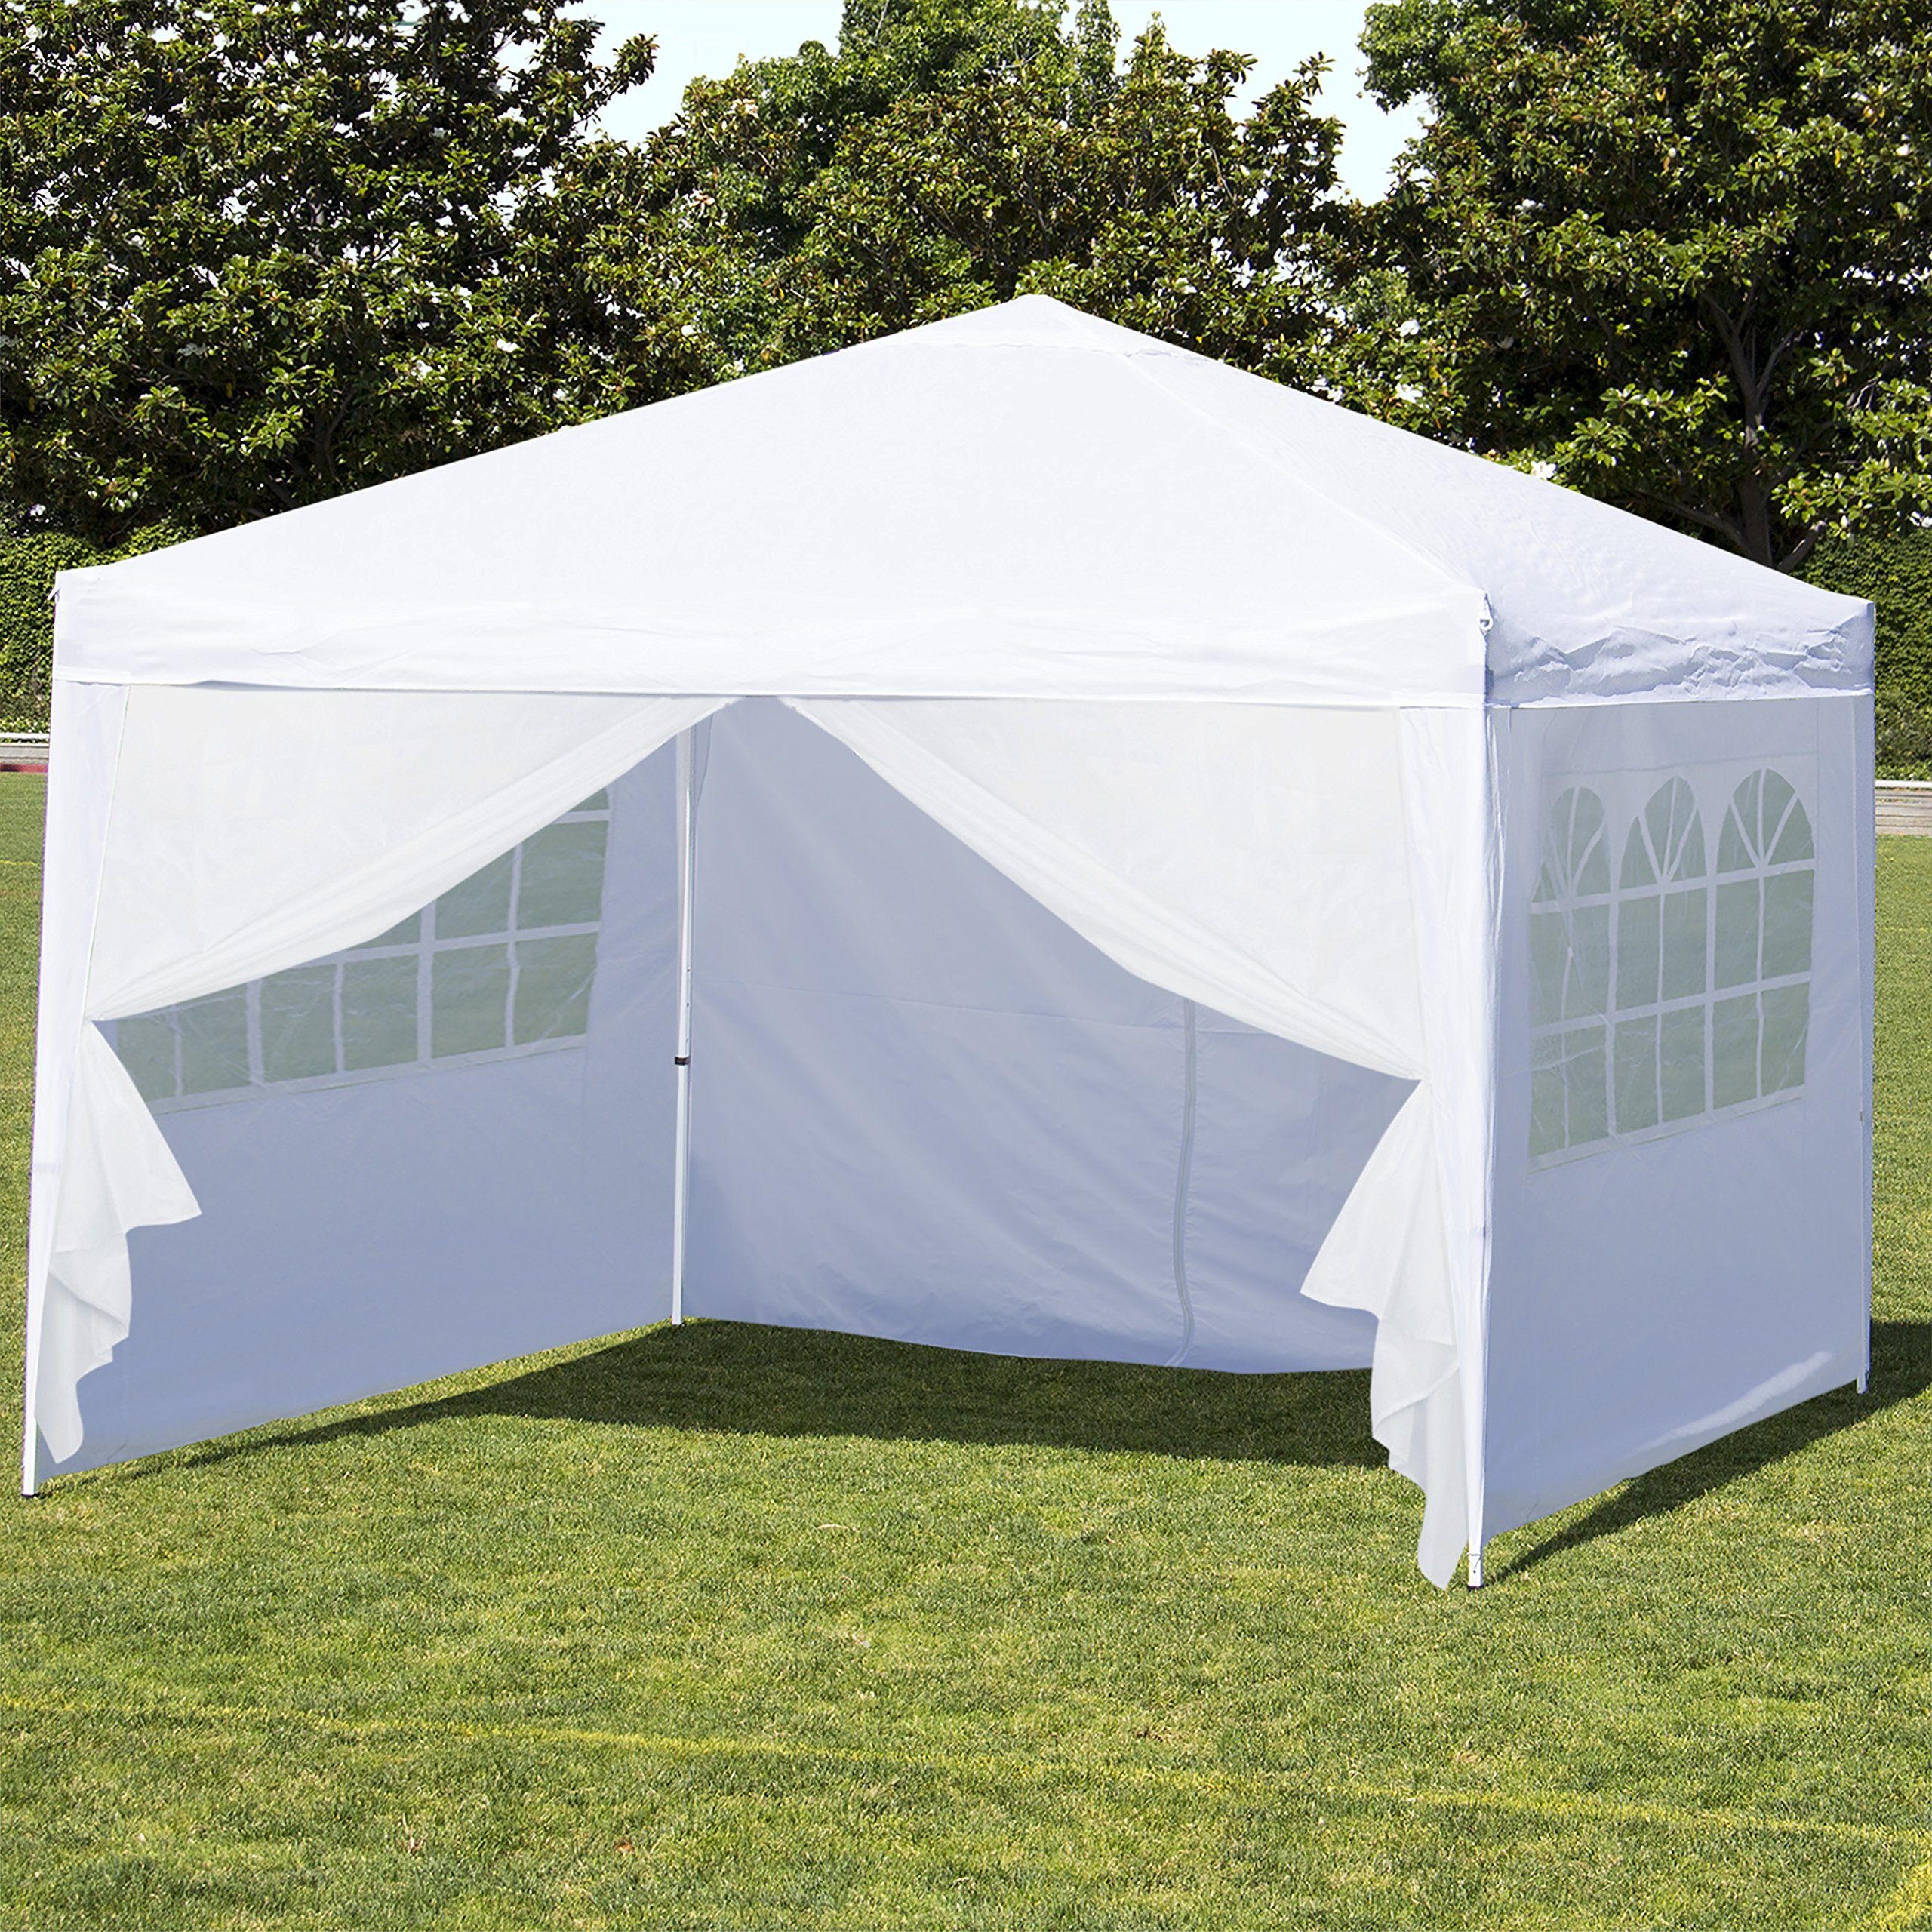 Best Choice Products 10x10ft Portable Lightweight Pop Up Canopy Tent w/Side Walls and Carrying Bag - White/Silver by Best Choice Products